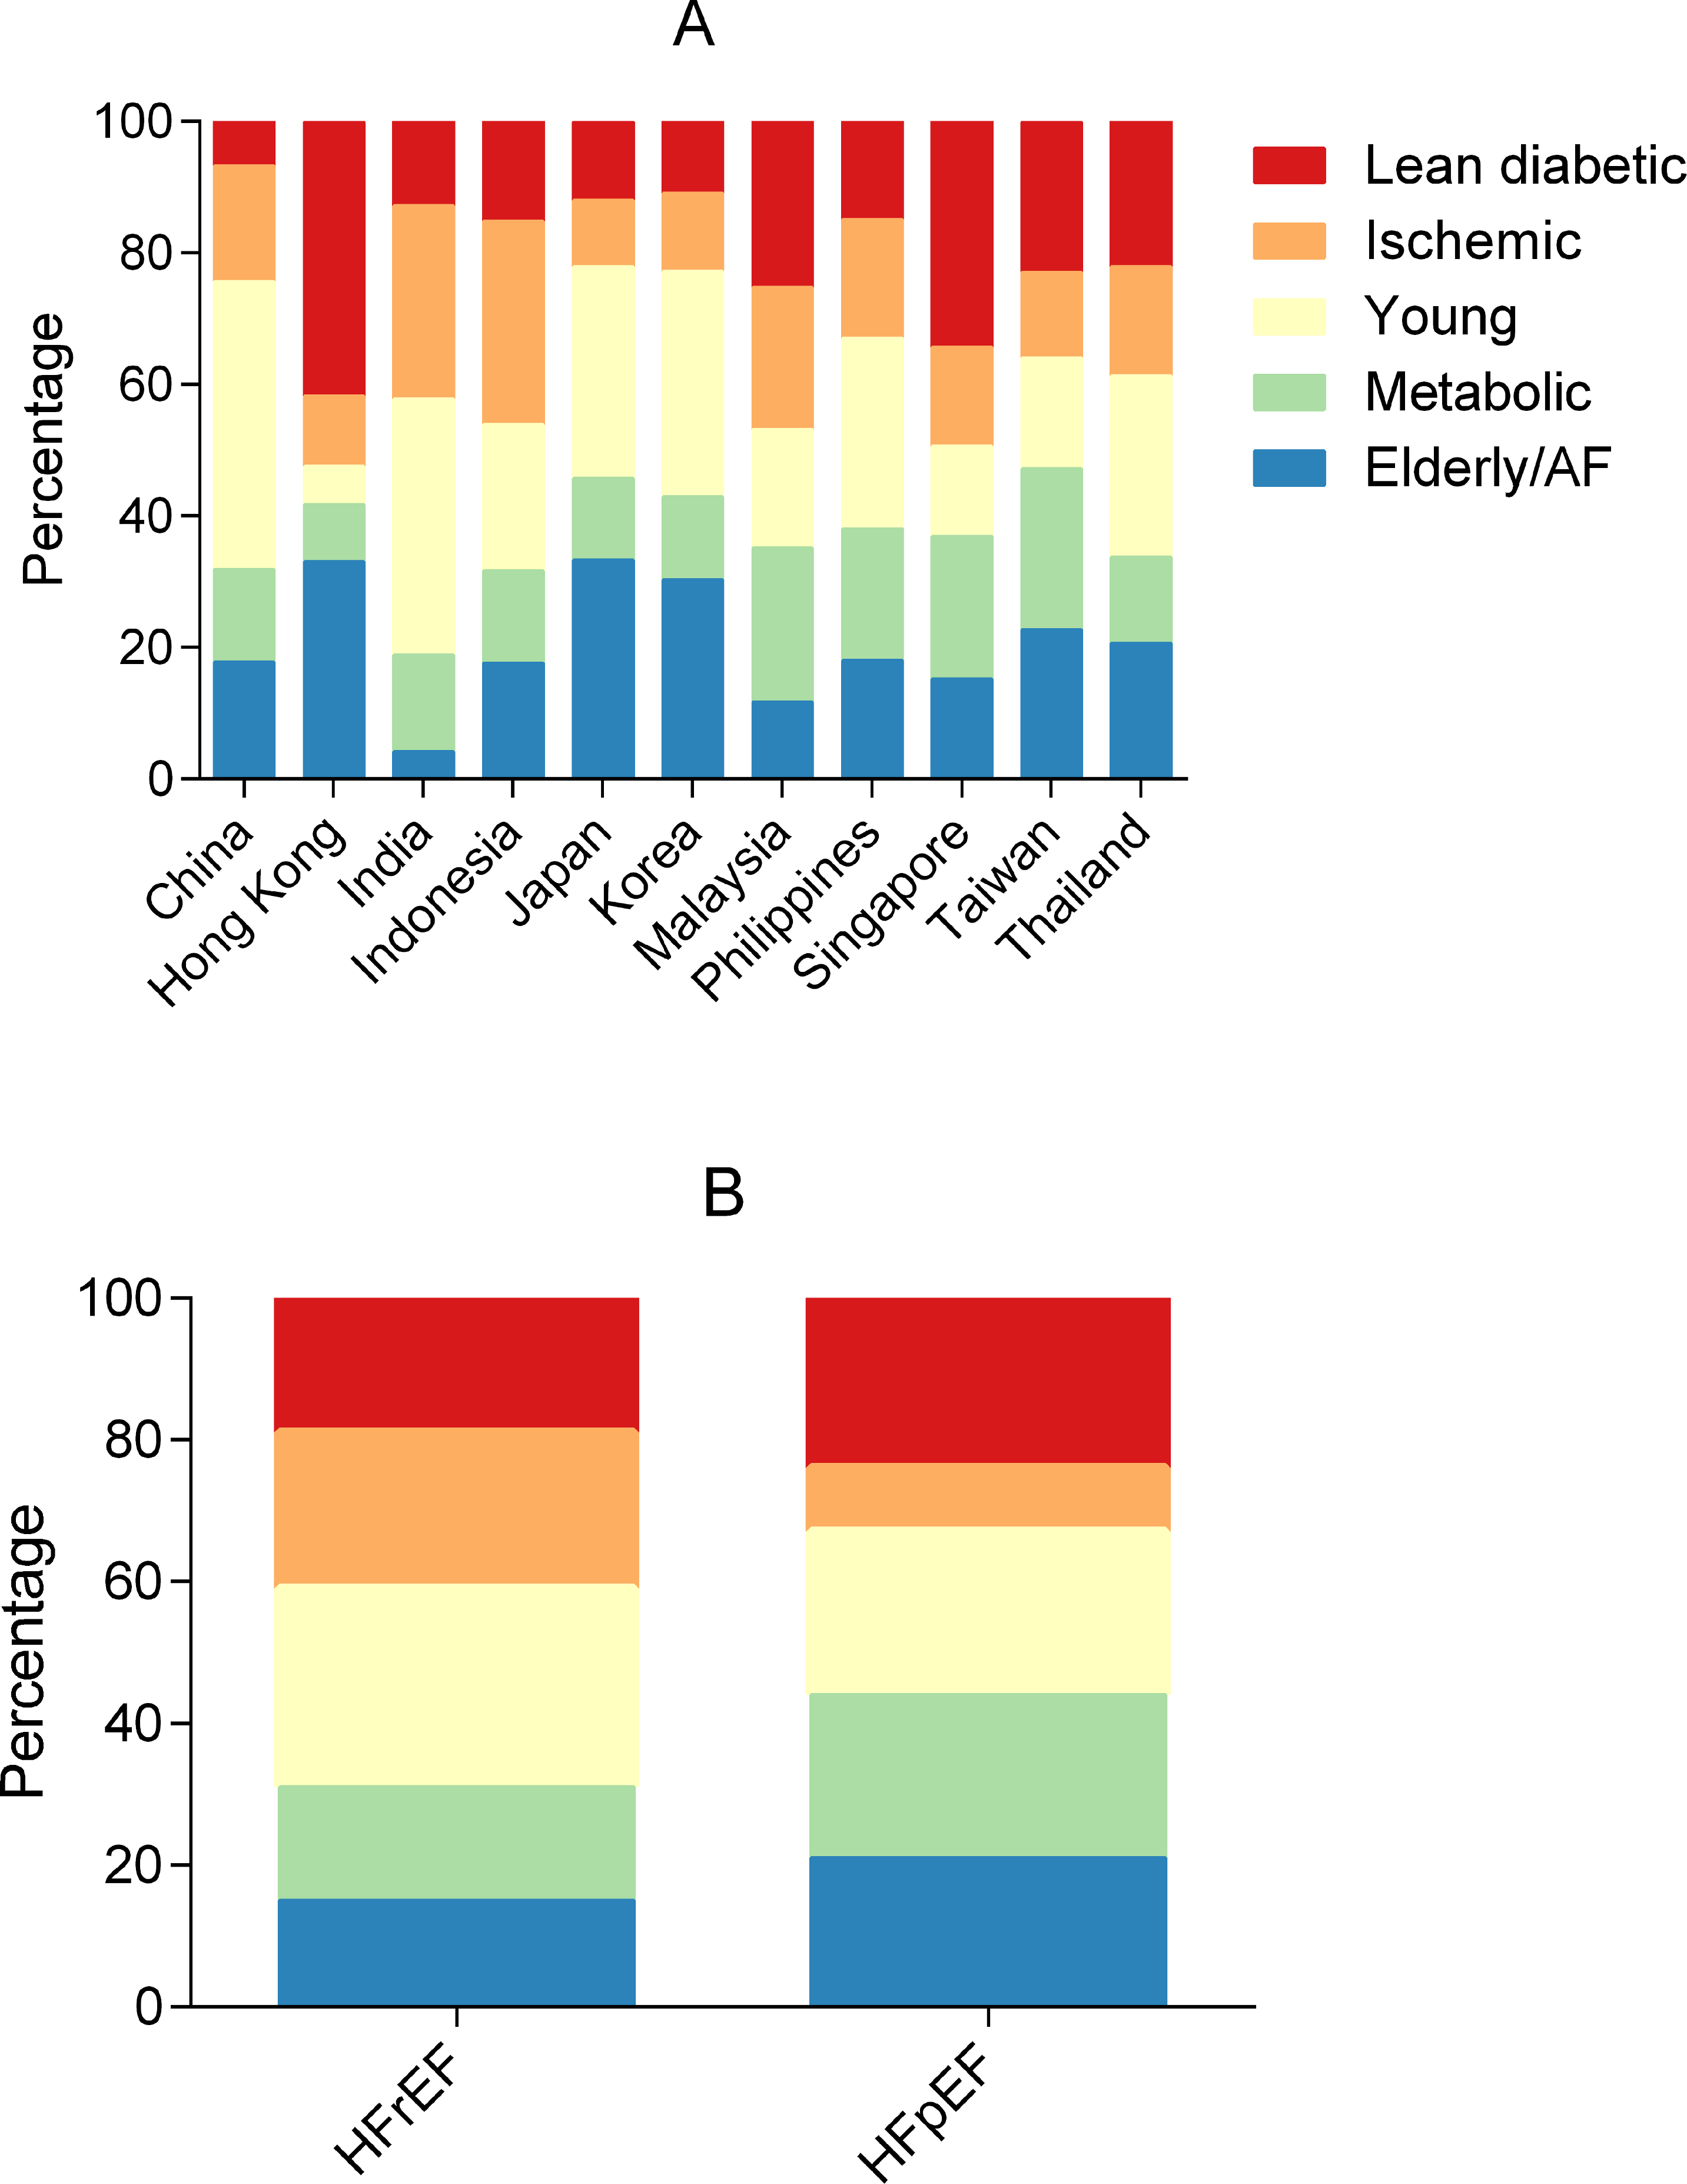 Bar graphs showing the distribution of multimorbidity groups across regions and HFrEF/HFpEF.